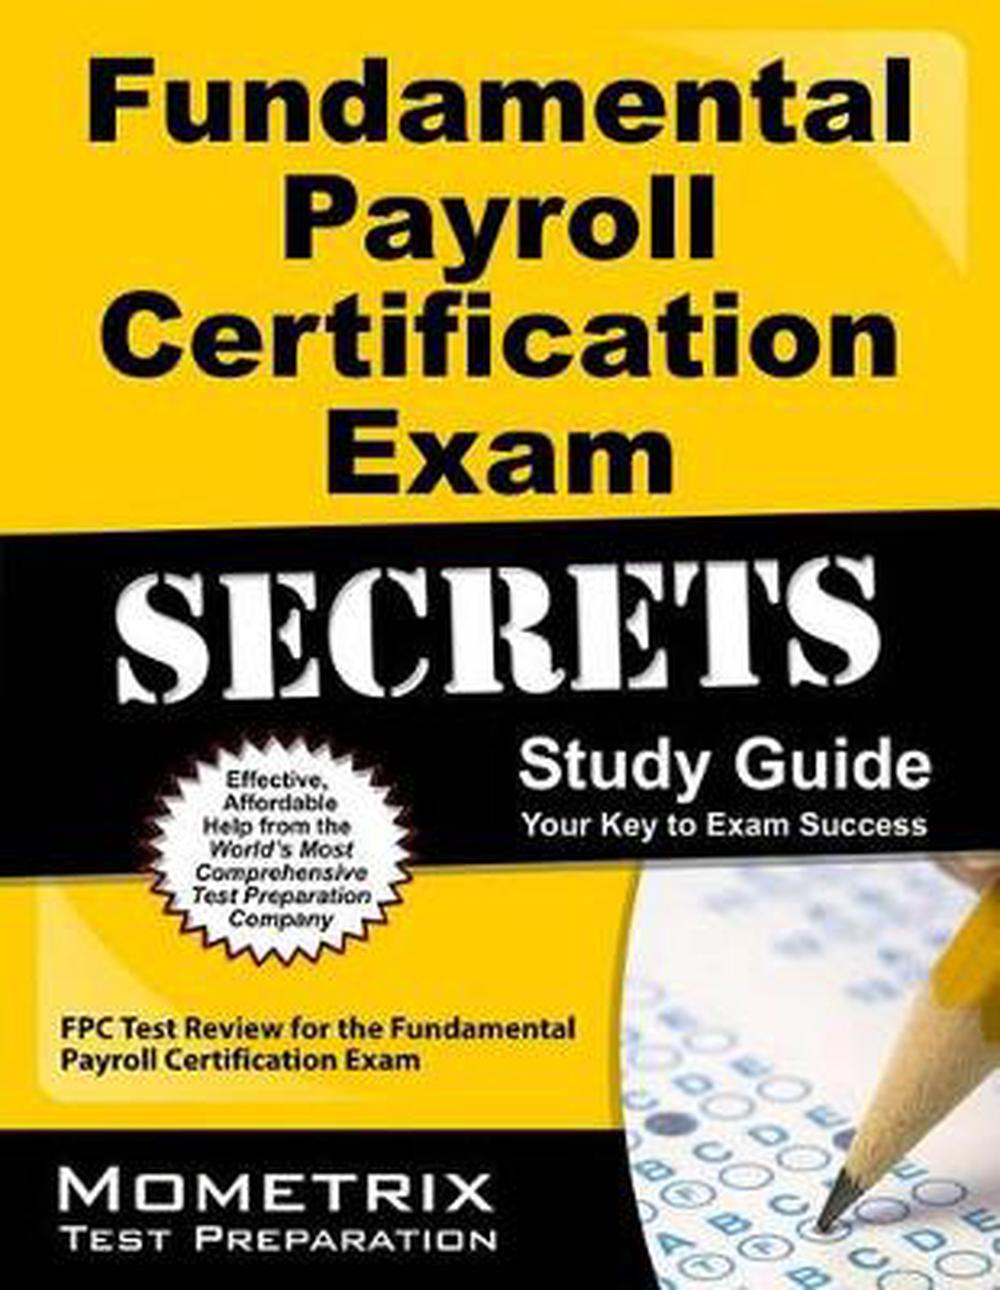 Fundamental Payroll Certification Exam Secrets Study Guide Fpc Test